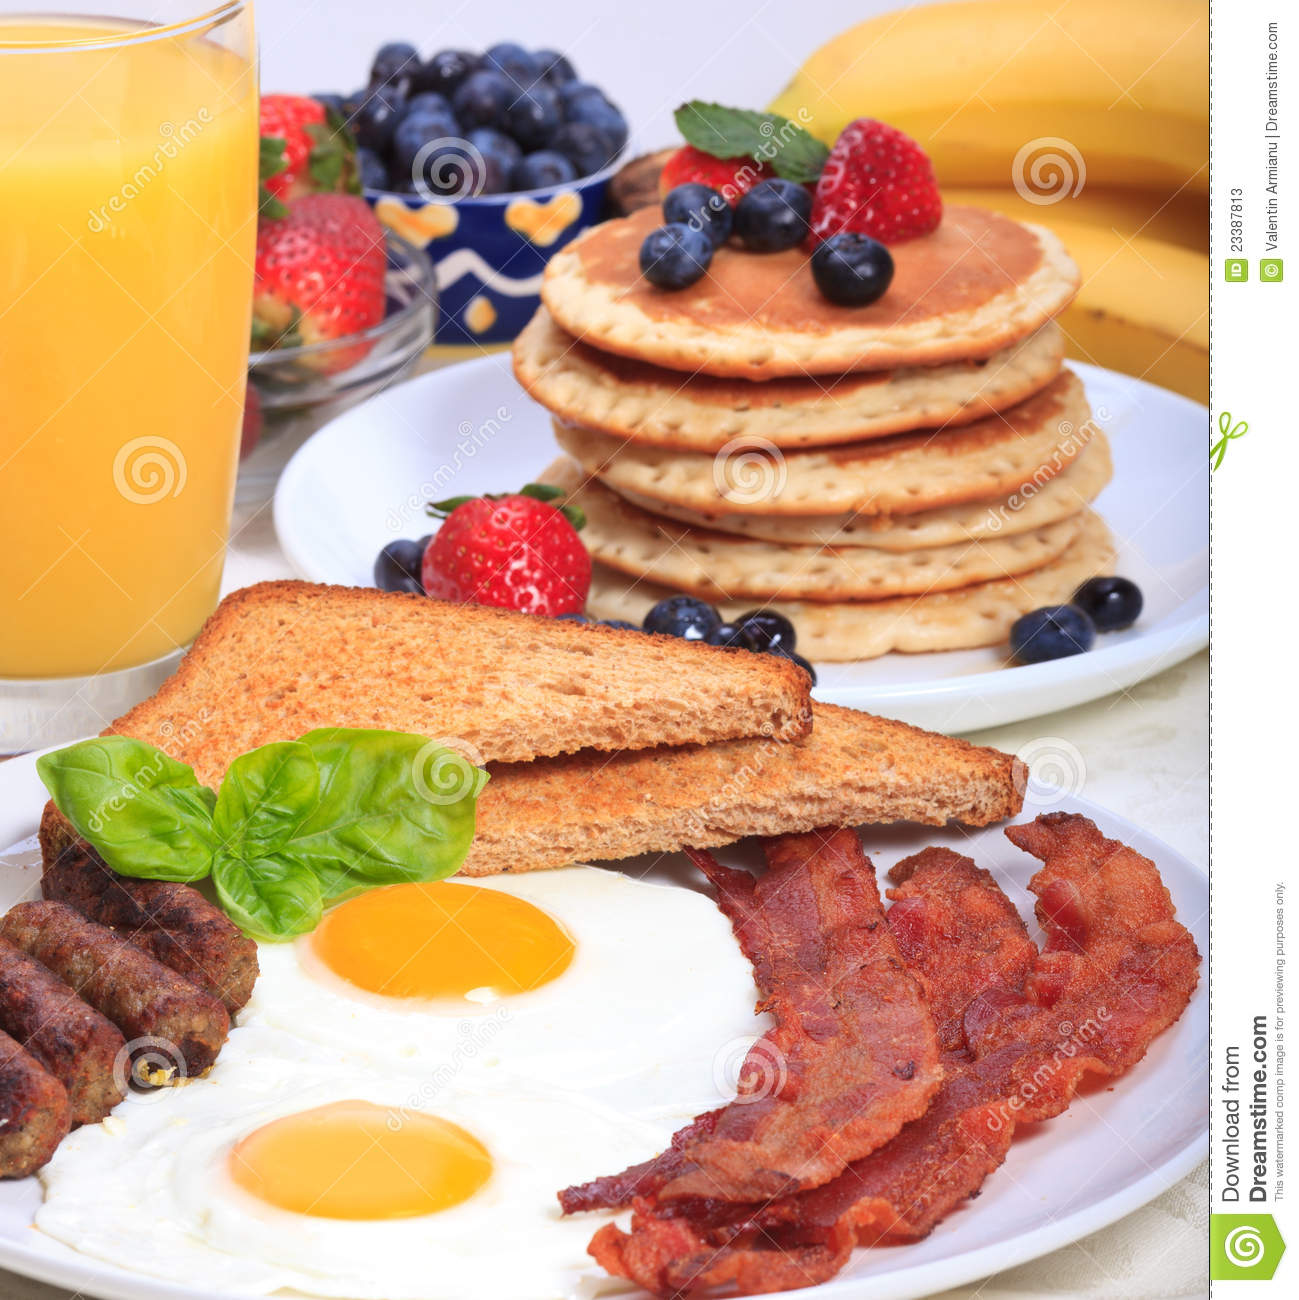 Rich Breakfast stock image. Image of orange, vegetable - 23387813